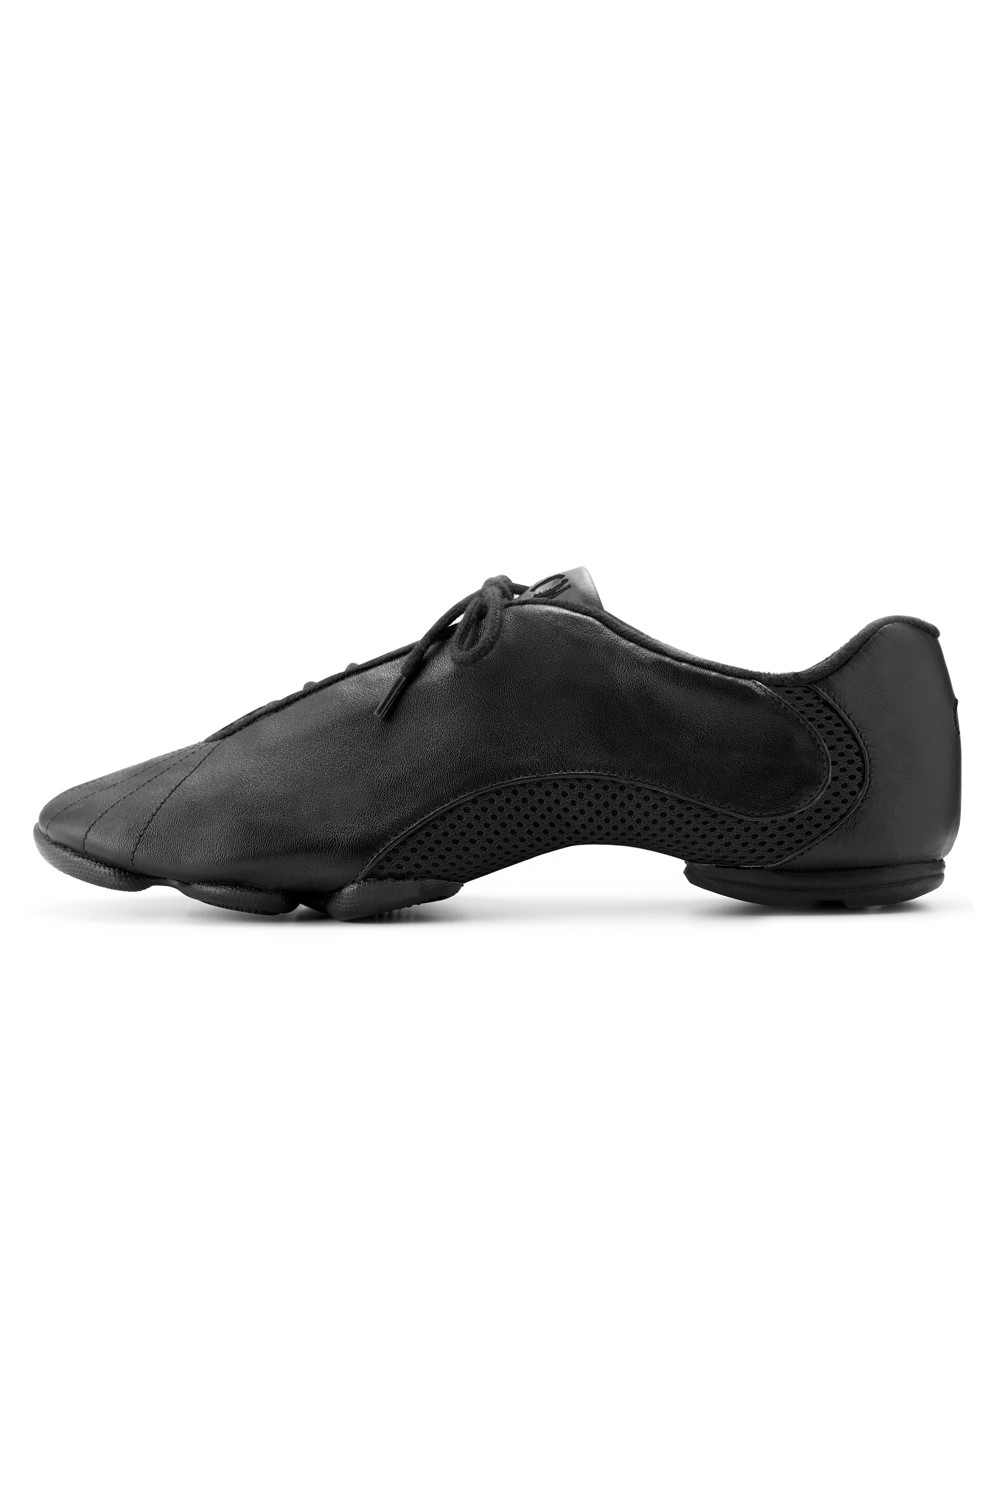 Amalgam Suede Sole - Mens Men's Dance Sneakers